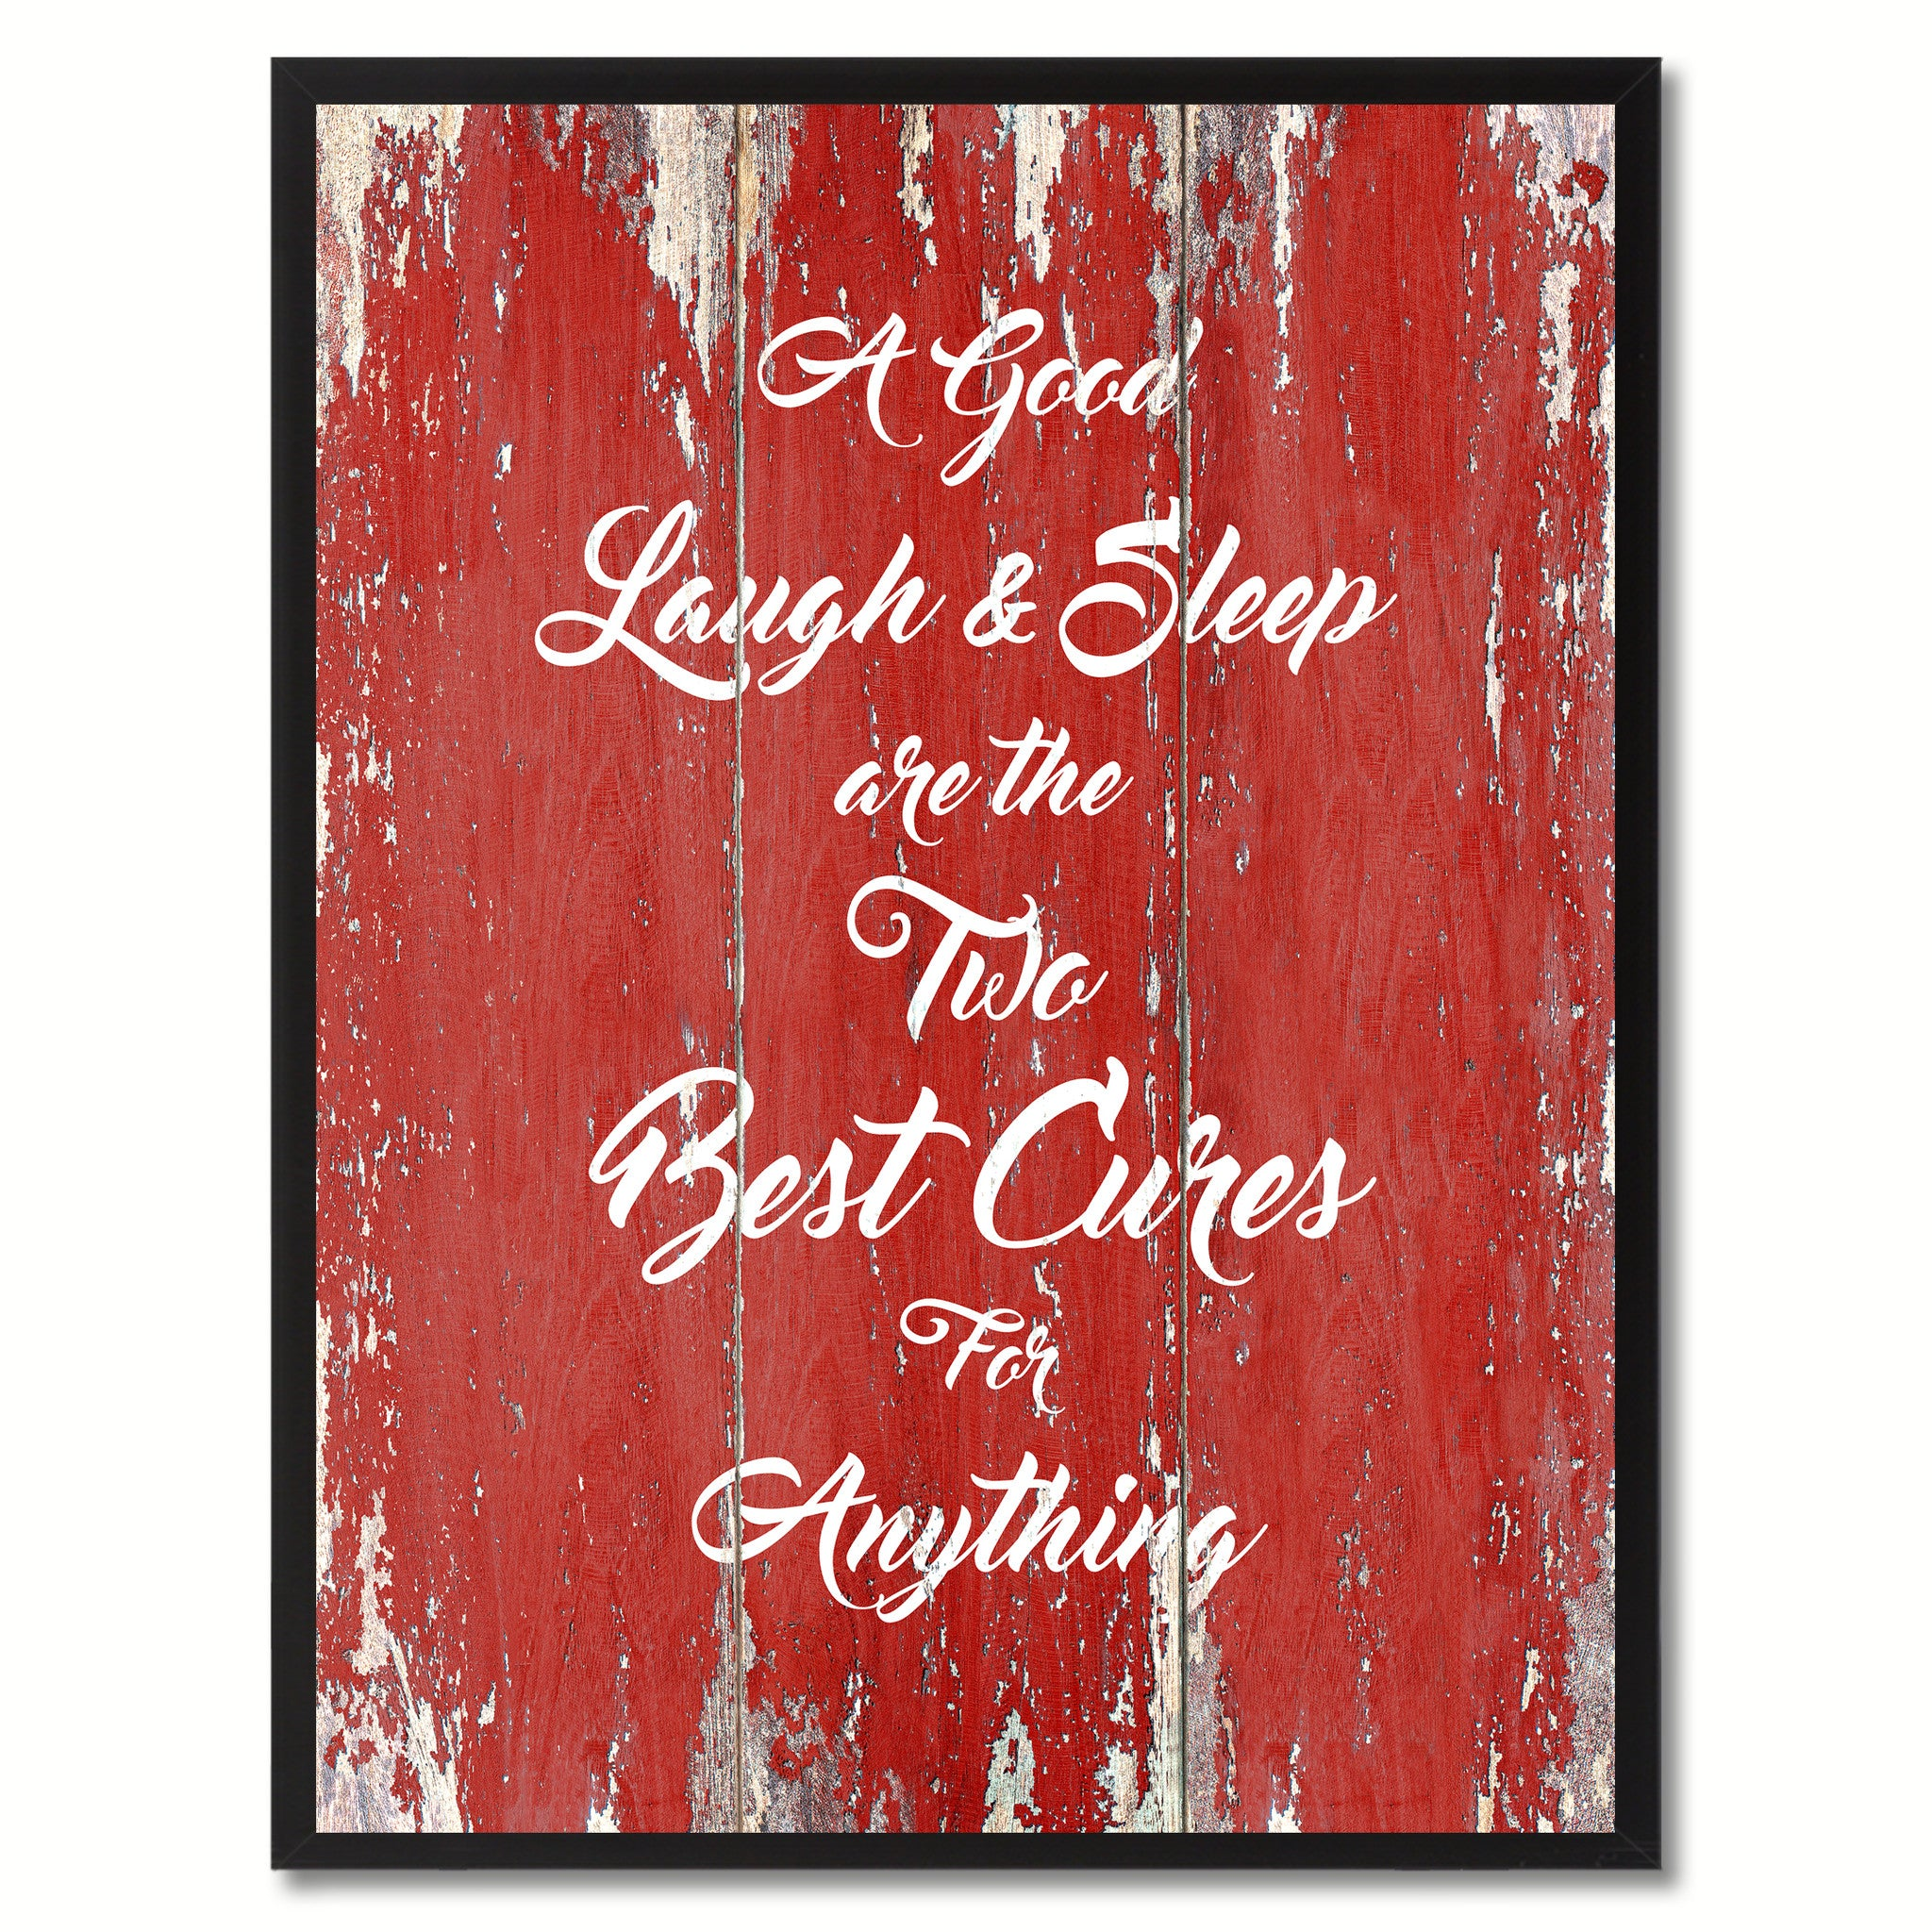 A good Laugh & Sleep are the two Best cures for Anything Inspirational Quote Saying Gift Ideas Home Décor Wall Art